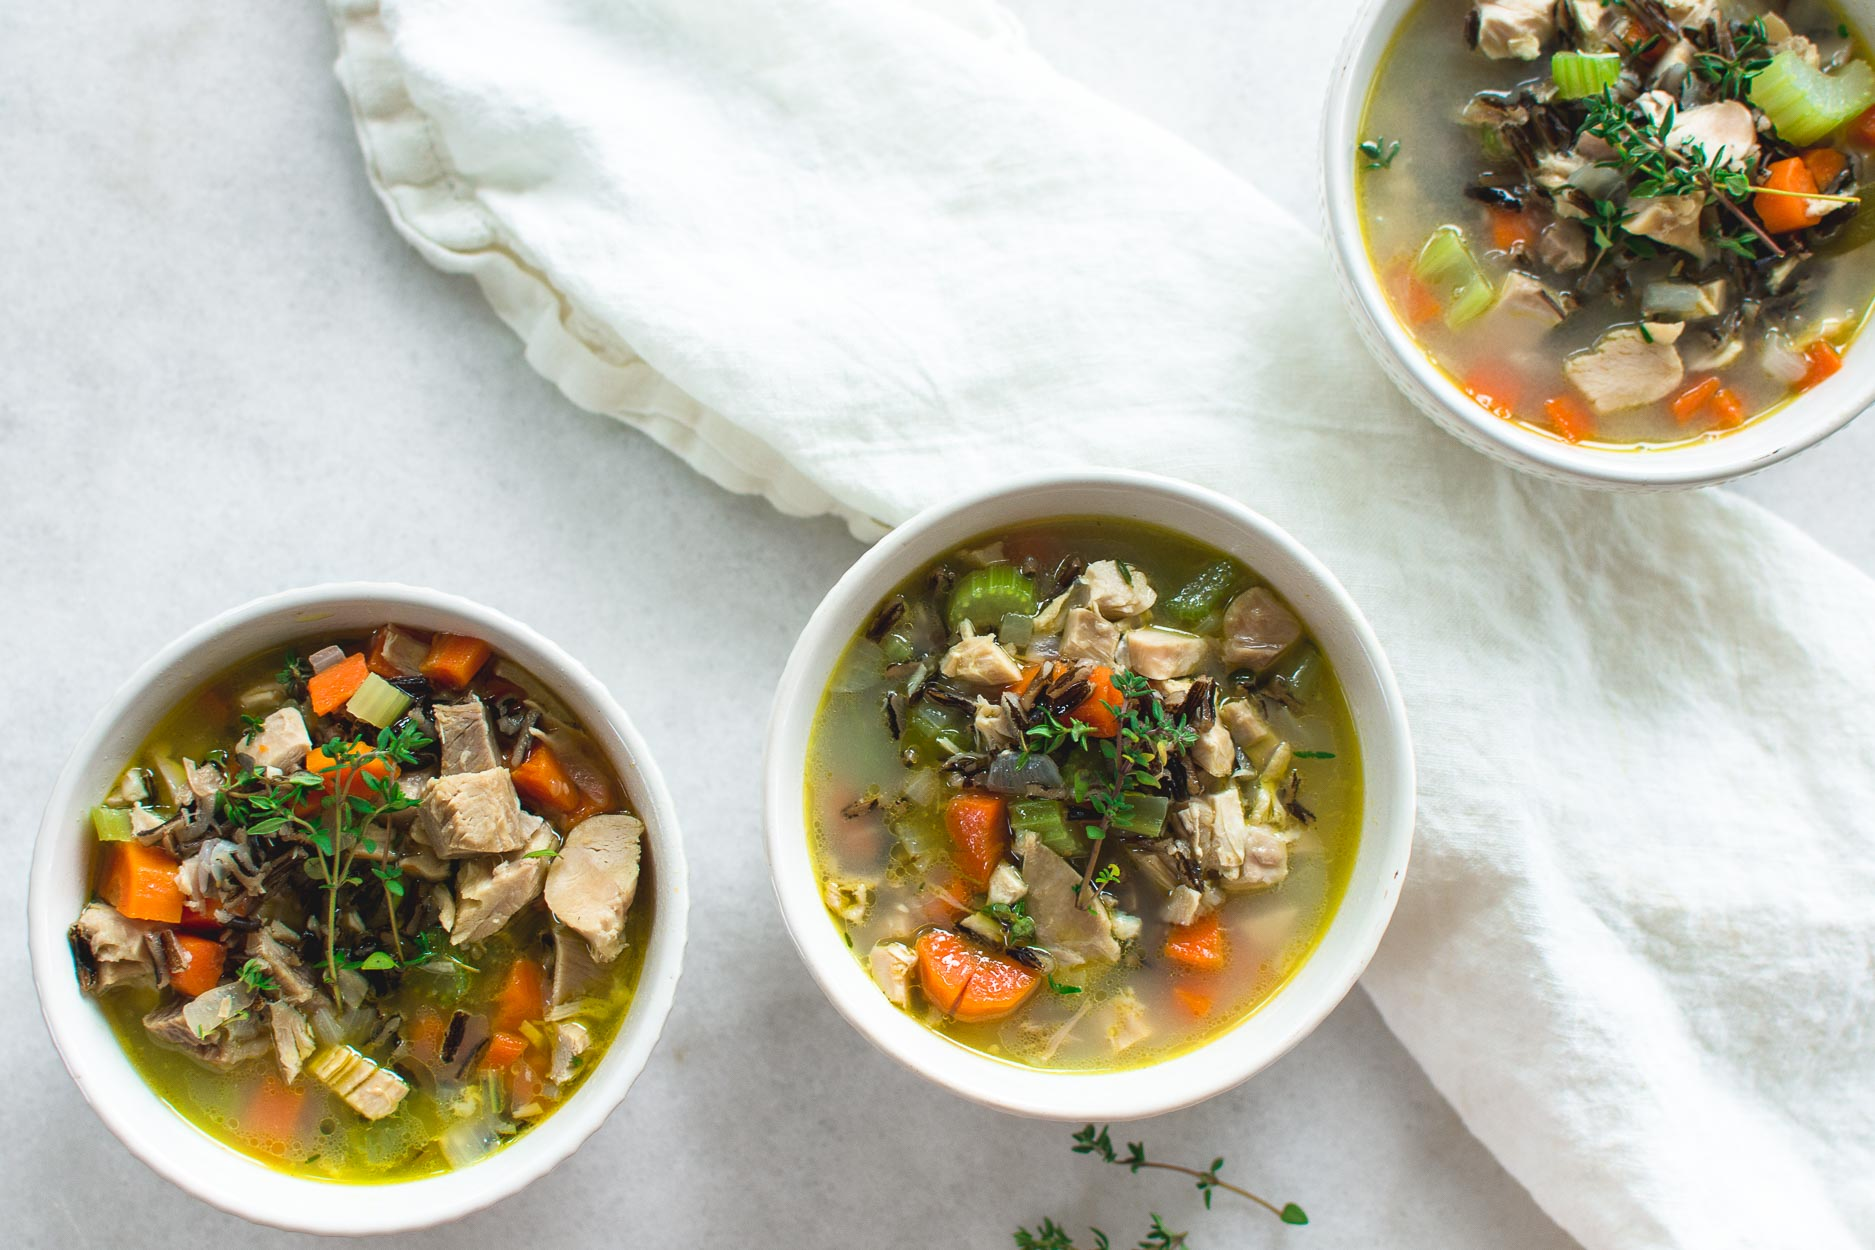 Turkey and Wild Rice Soup made with Plenty of Bone Broth and Vegetables